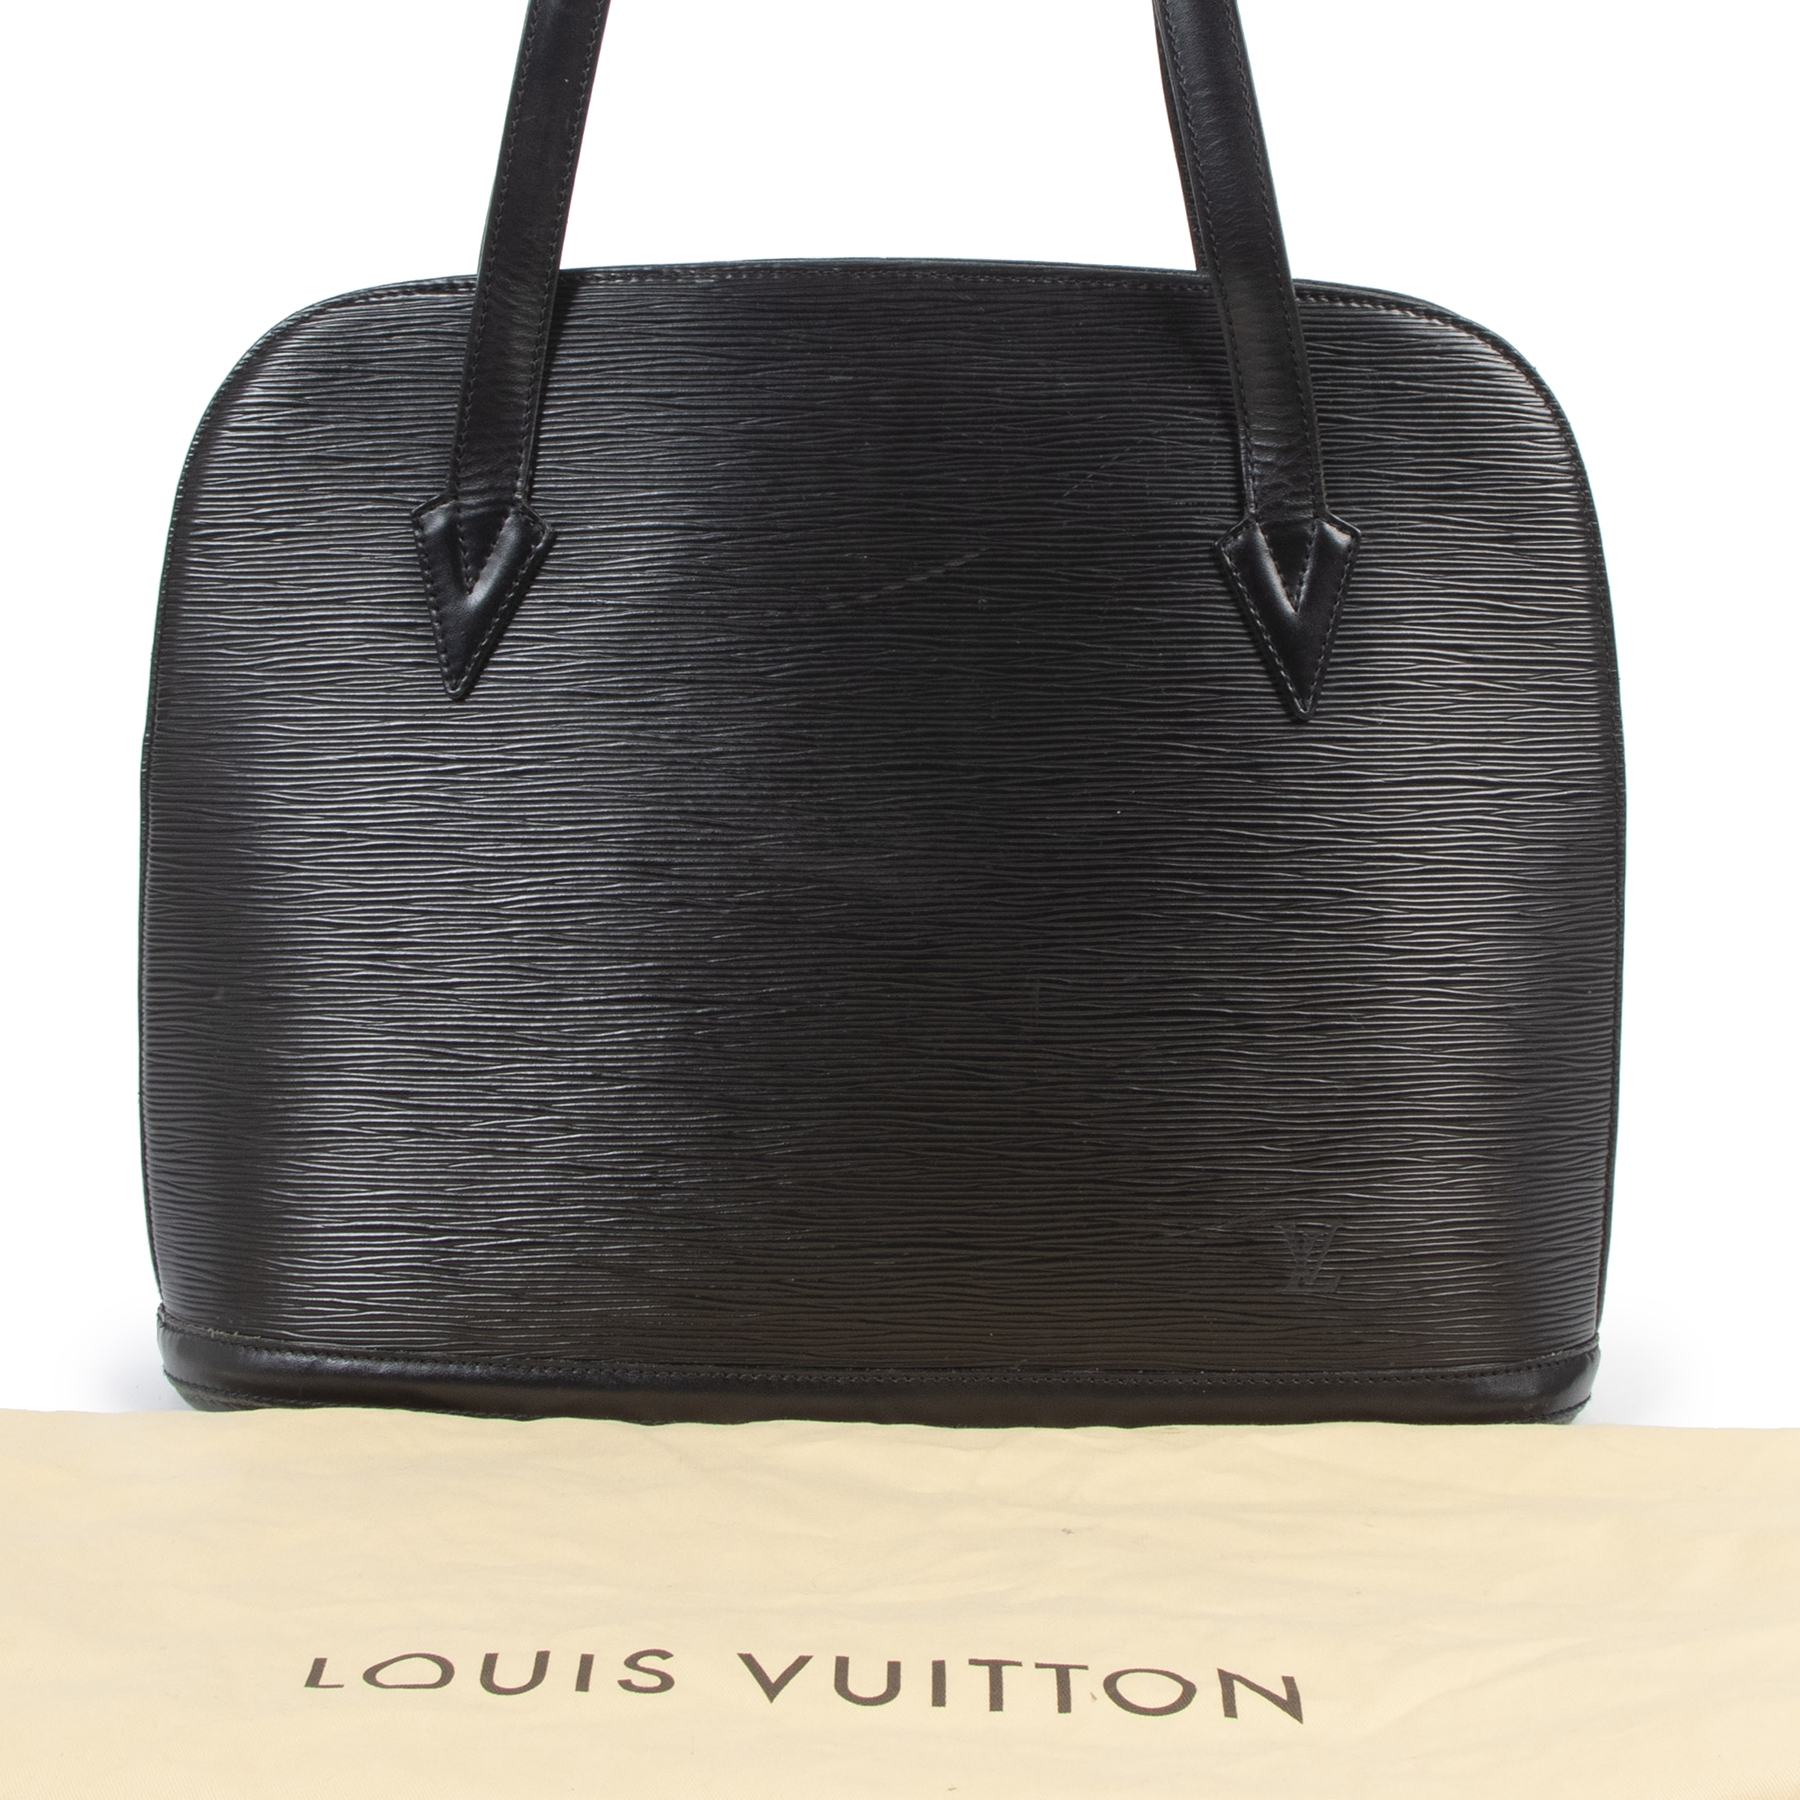 Authentic secondhand  Louis Vuitton Black Epi Leather Lussac Tote designer bags fashion luxury vintage webshop safe secure online shopping